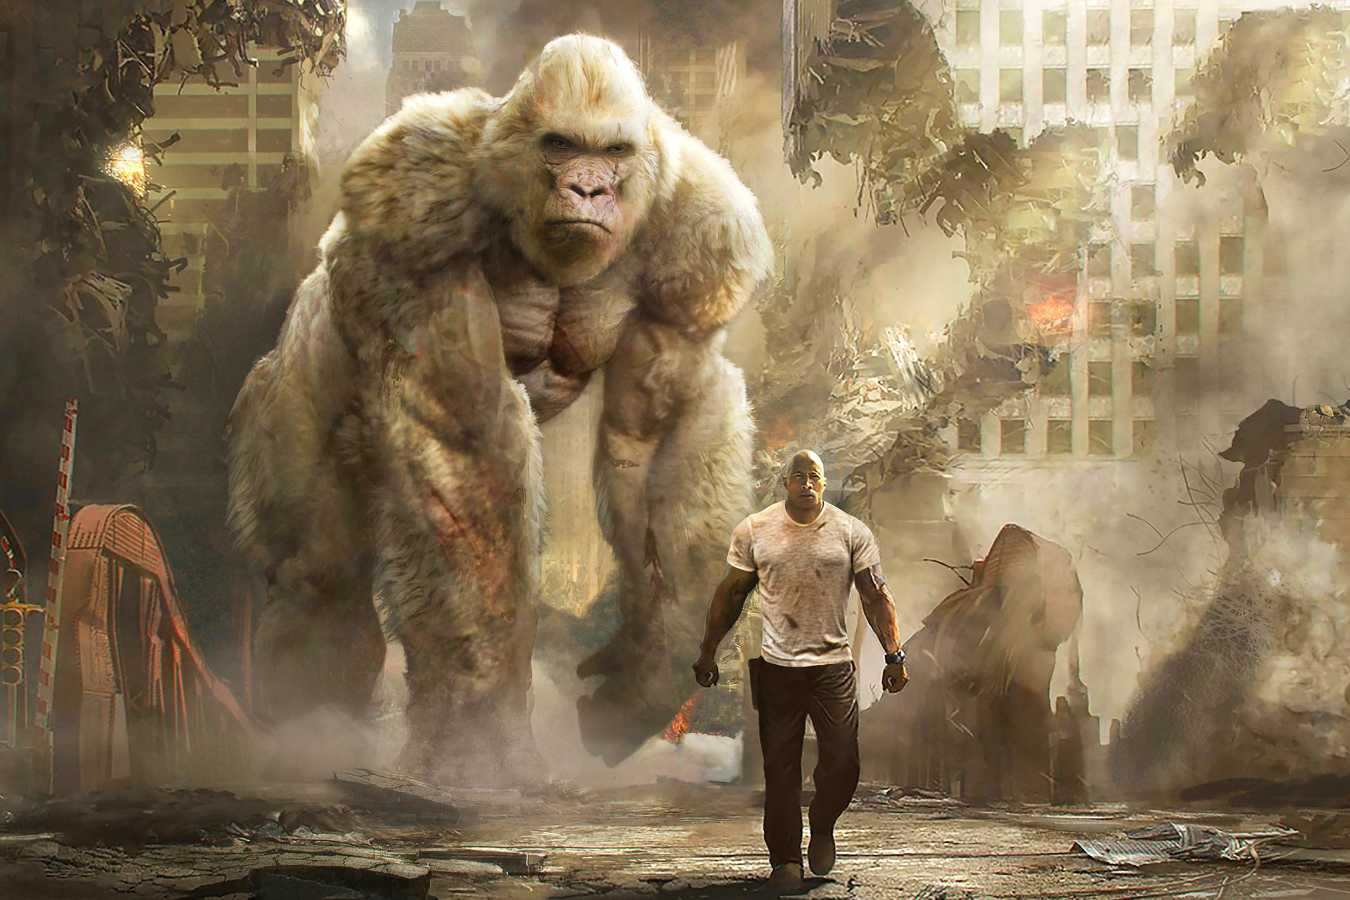 Rampage Dwayne Johnson With George The Giant Gorilla